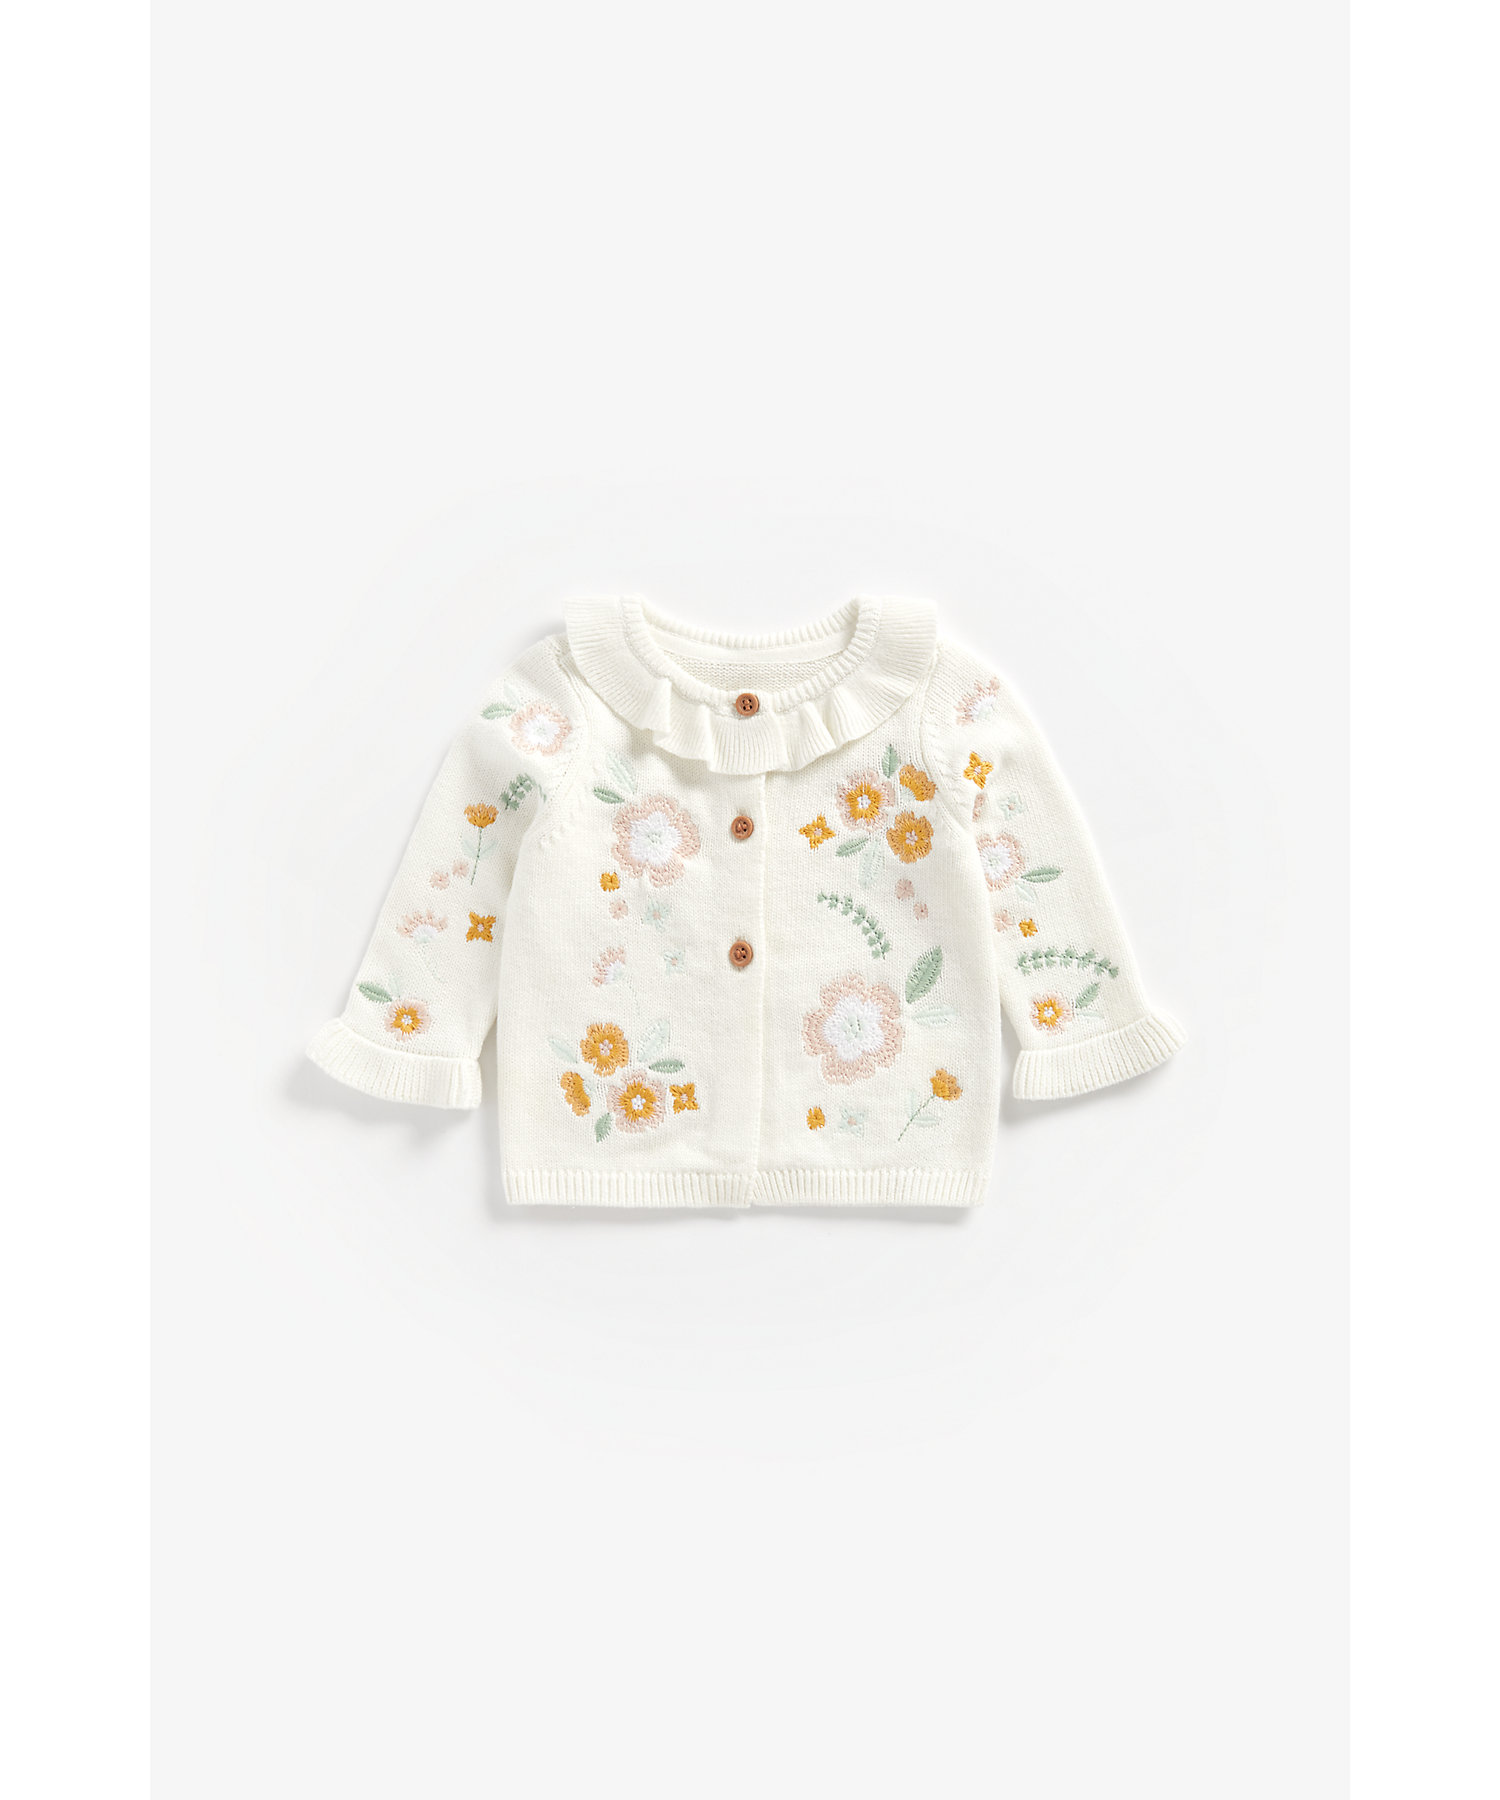 Mothercare | Girls Full Sleeves Cardigan Floral Embroidery - White